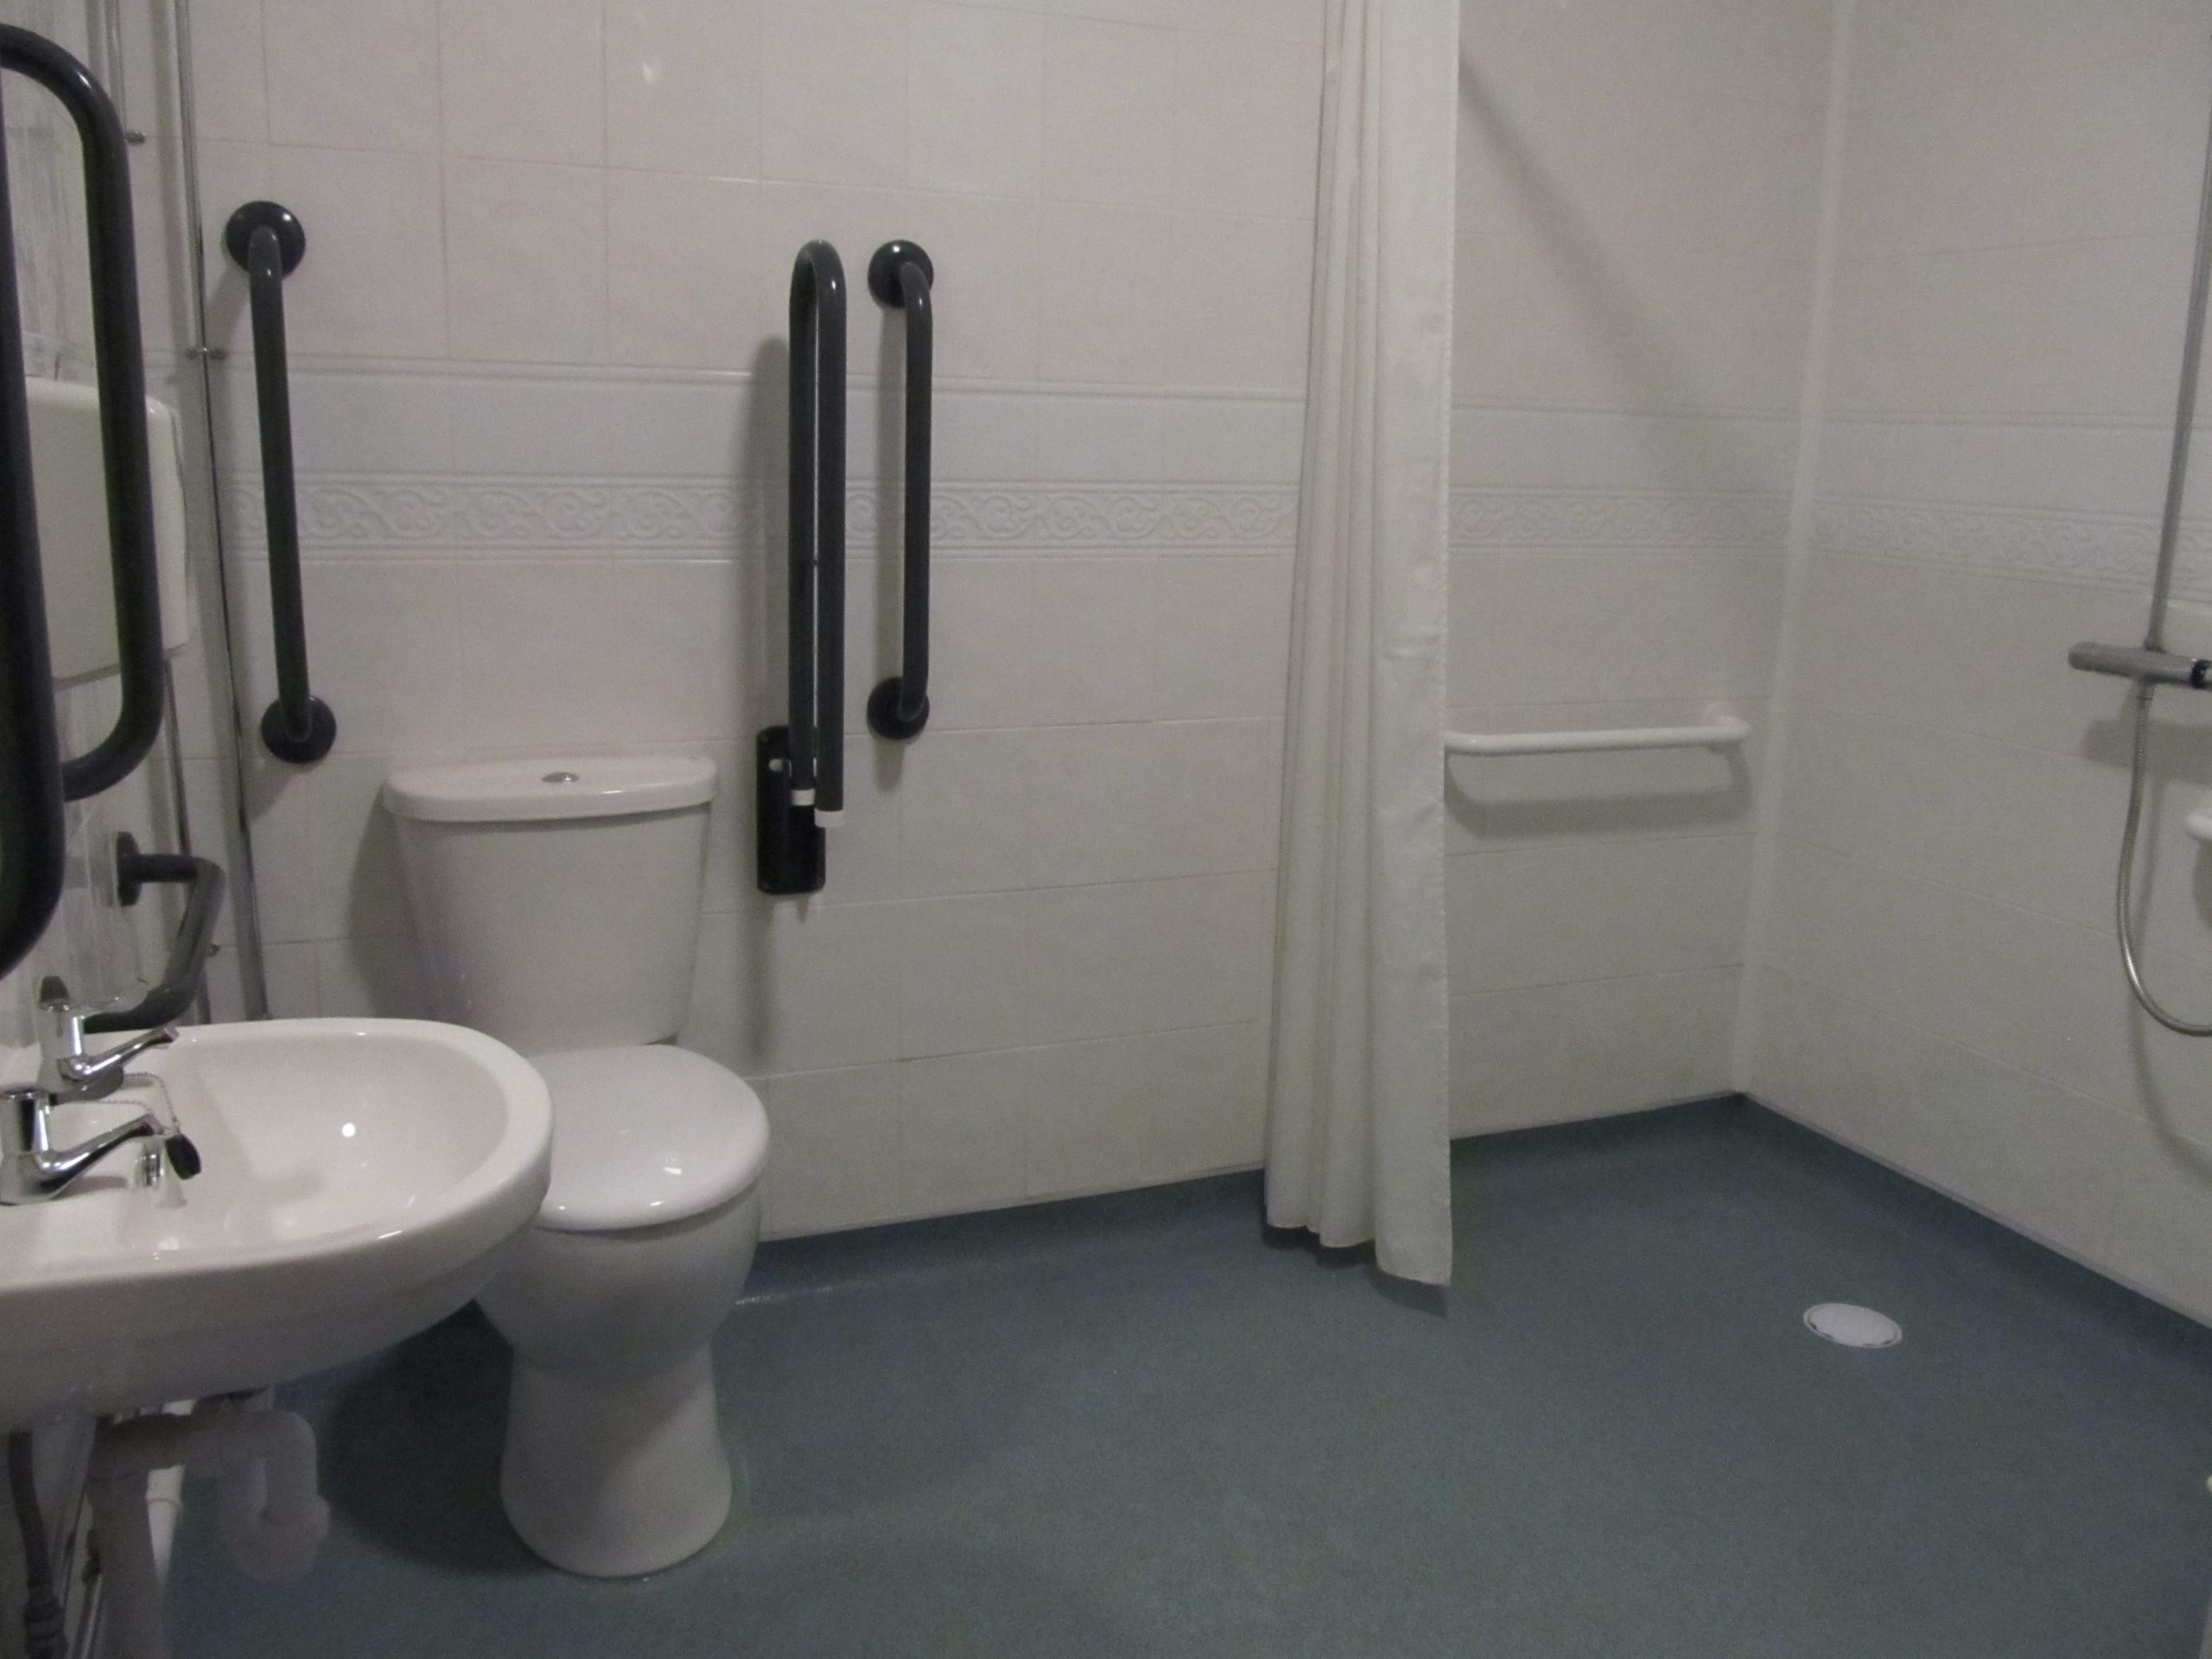 Accessibility and wet room facilities